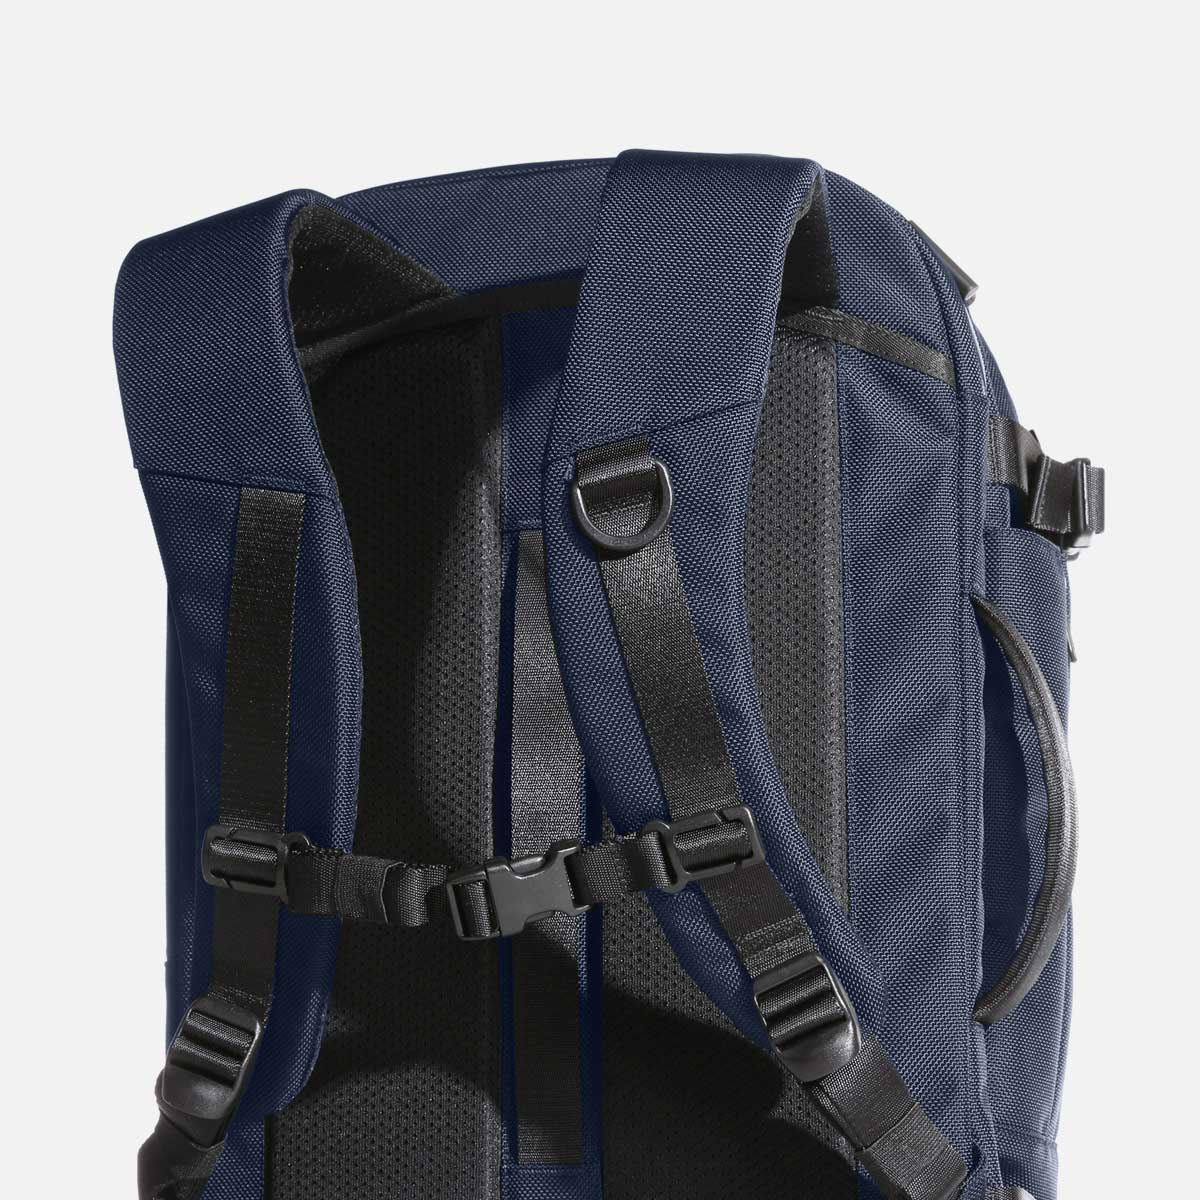 Ergonomic shoulder straps keep you comfortable throughout the day.